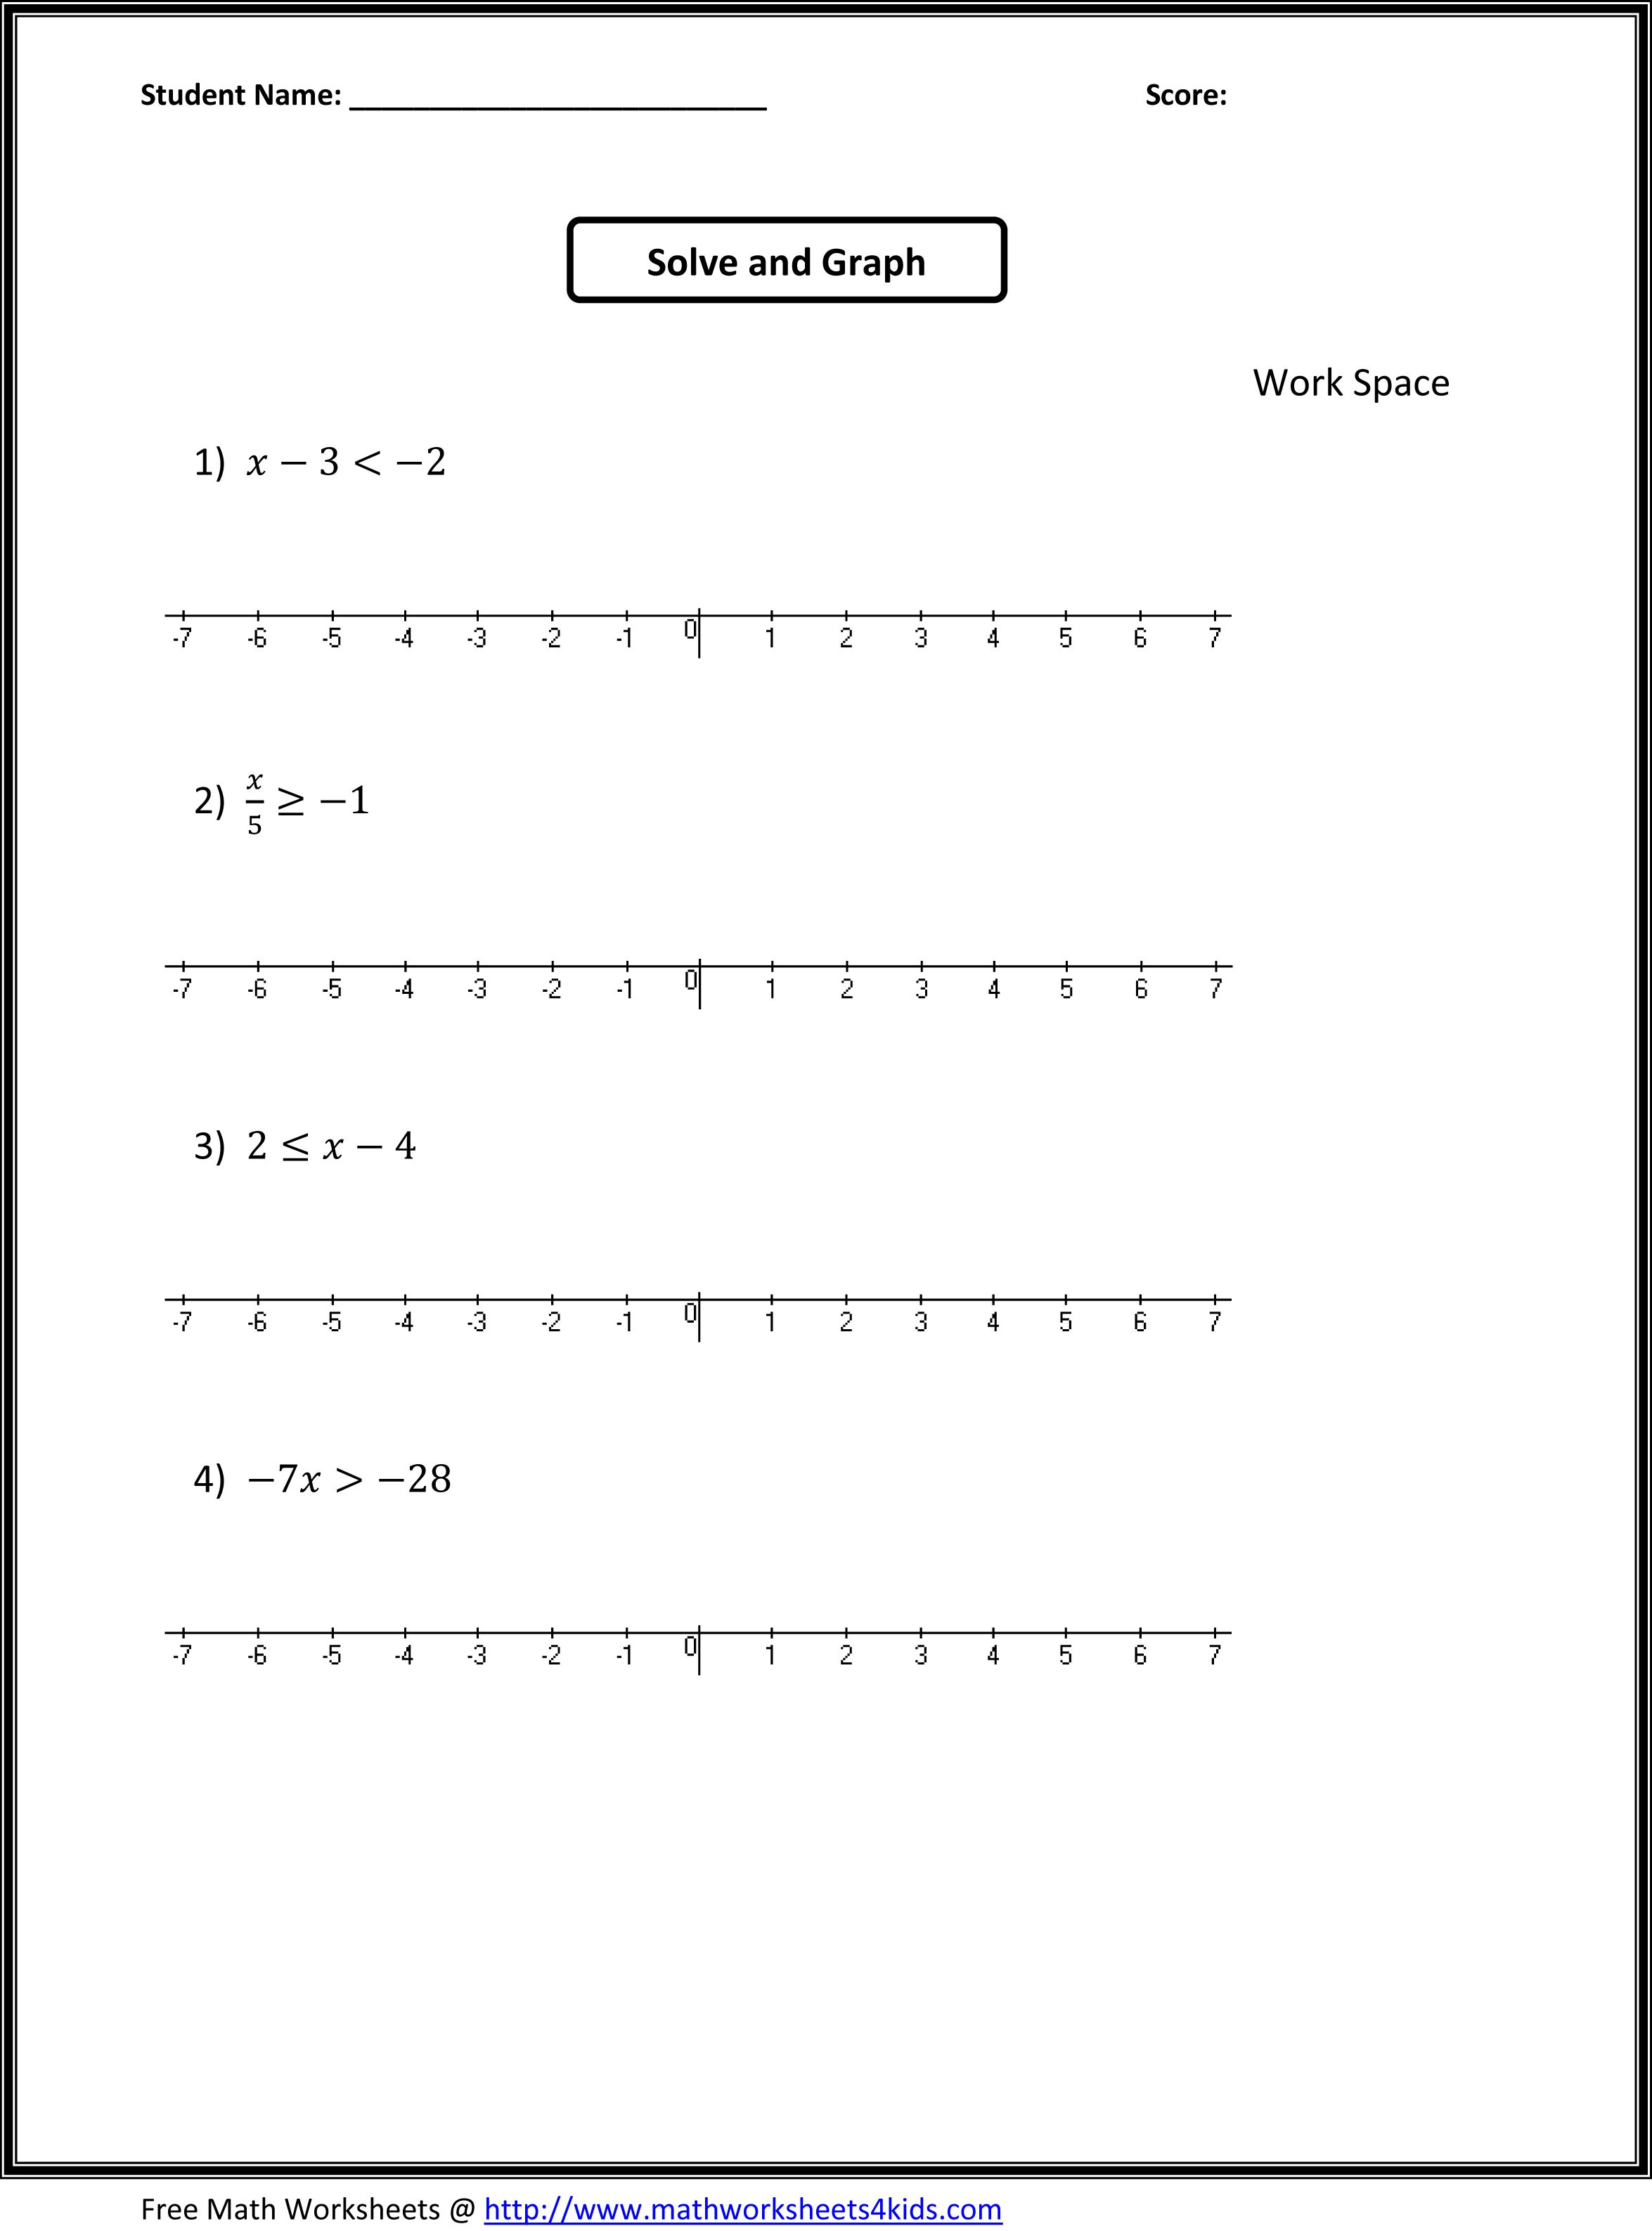 Worksheets Box And Whisker Plot Worksheets 7th grade algebra worksheets math places worksheets